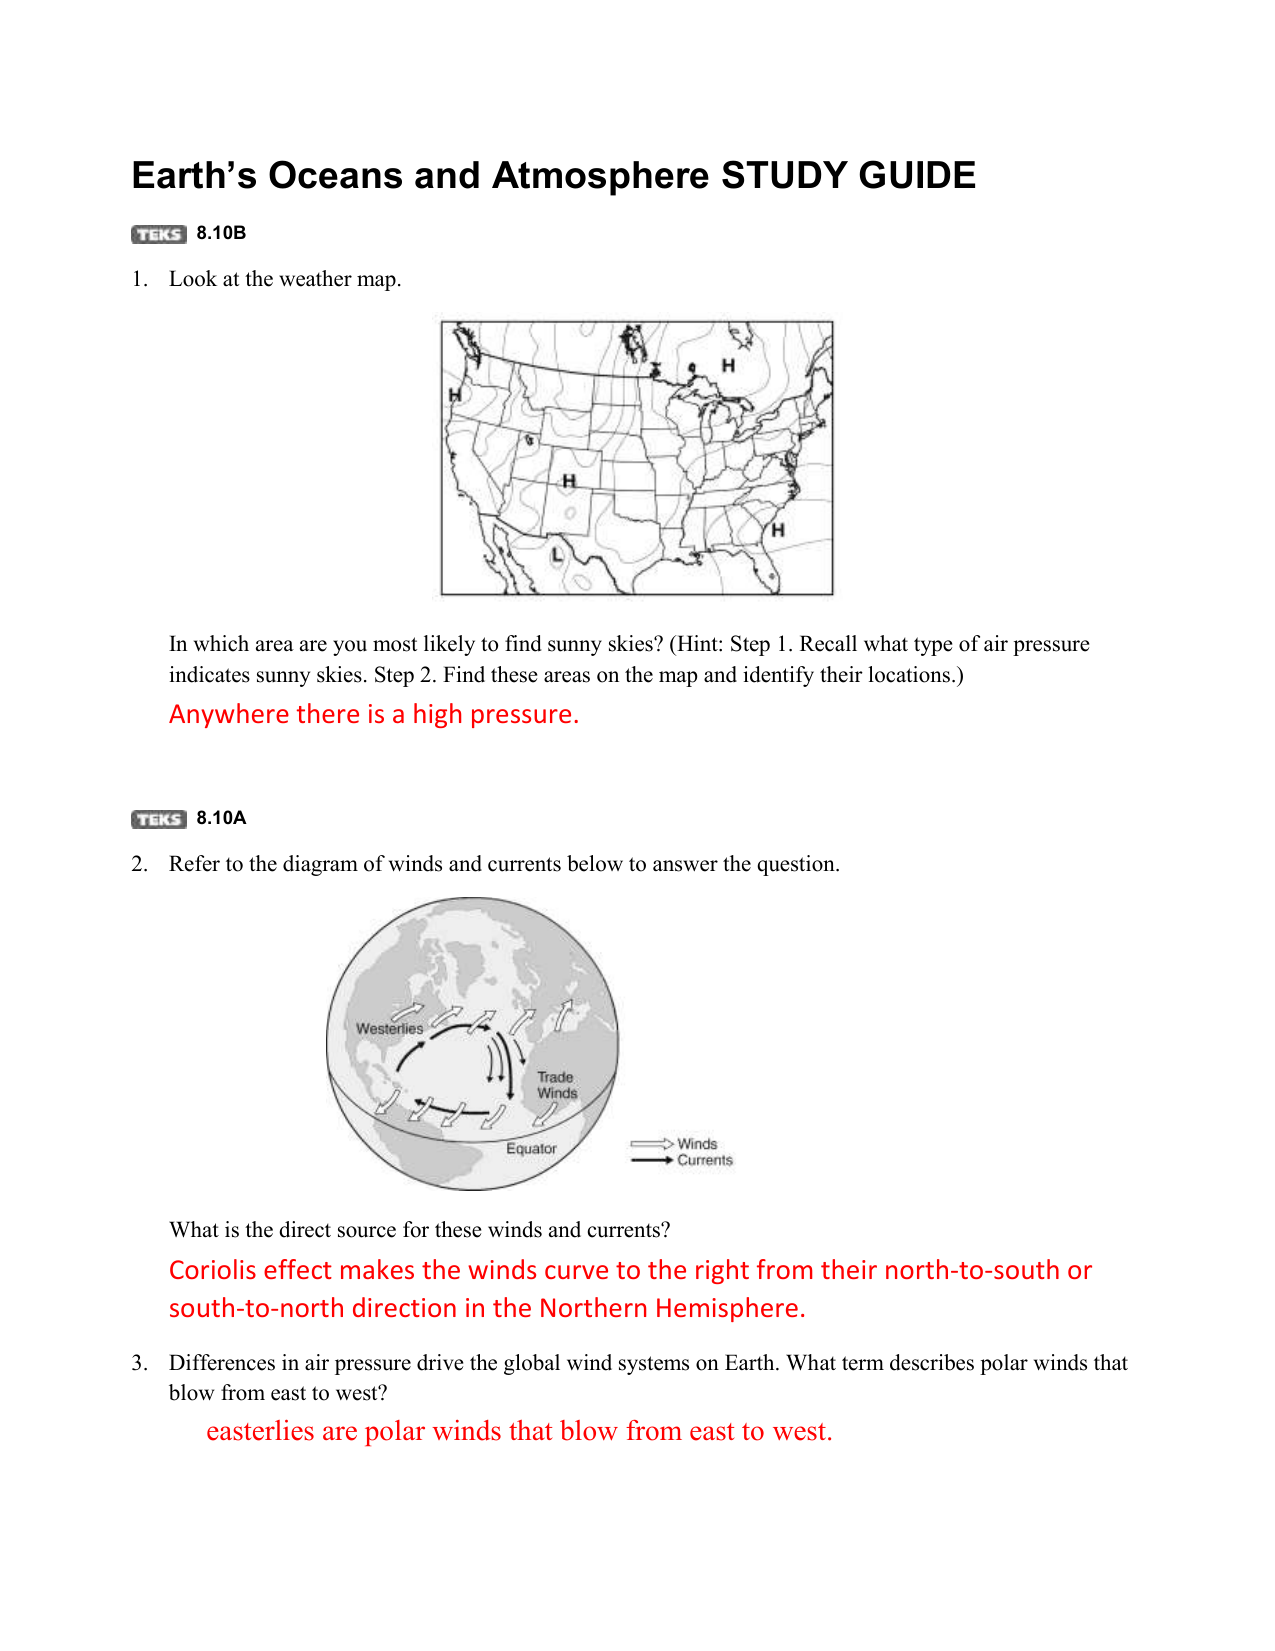 Earths oceans and atmosphere study guide 810b 1 look at the pooptronica